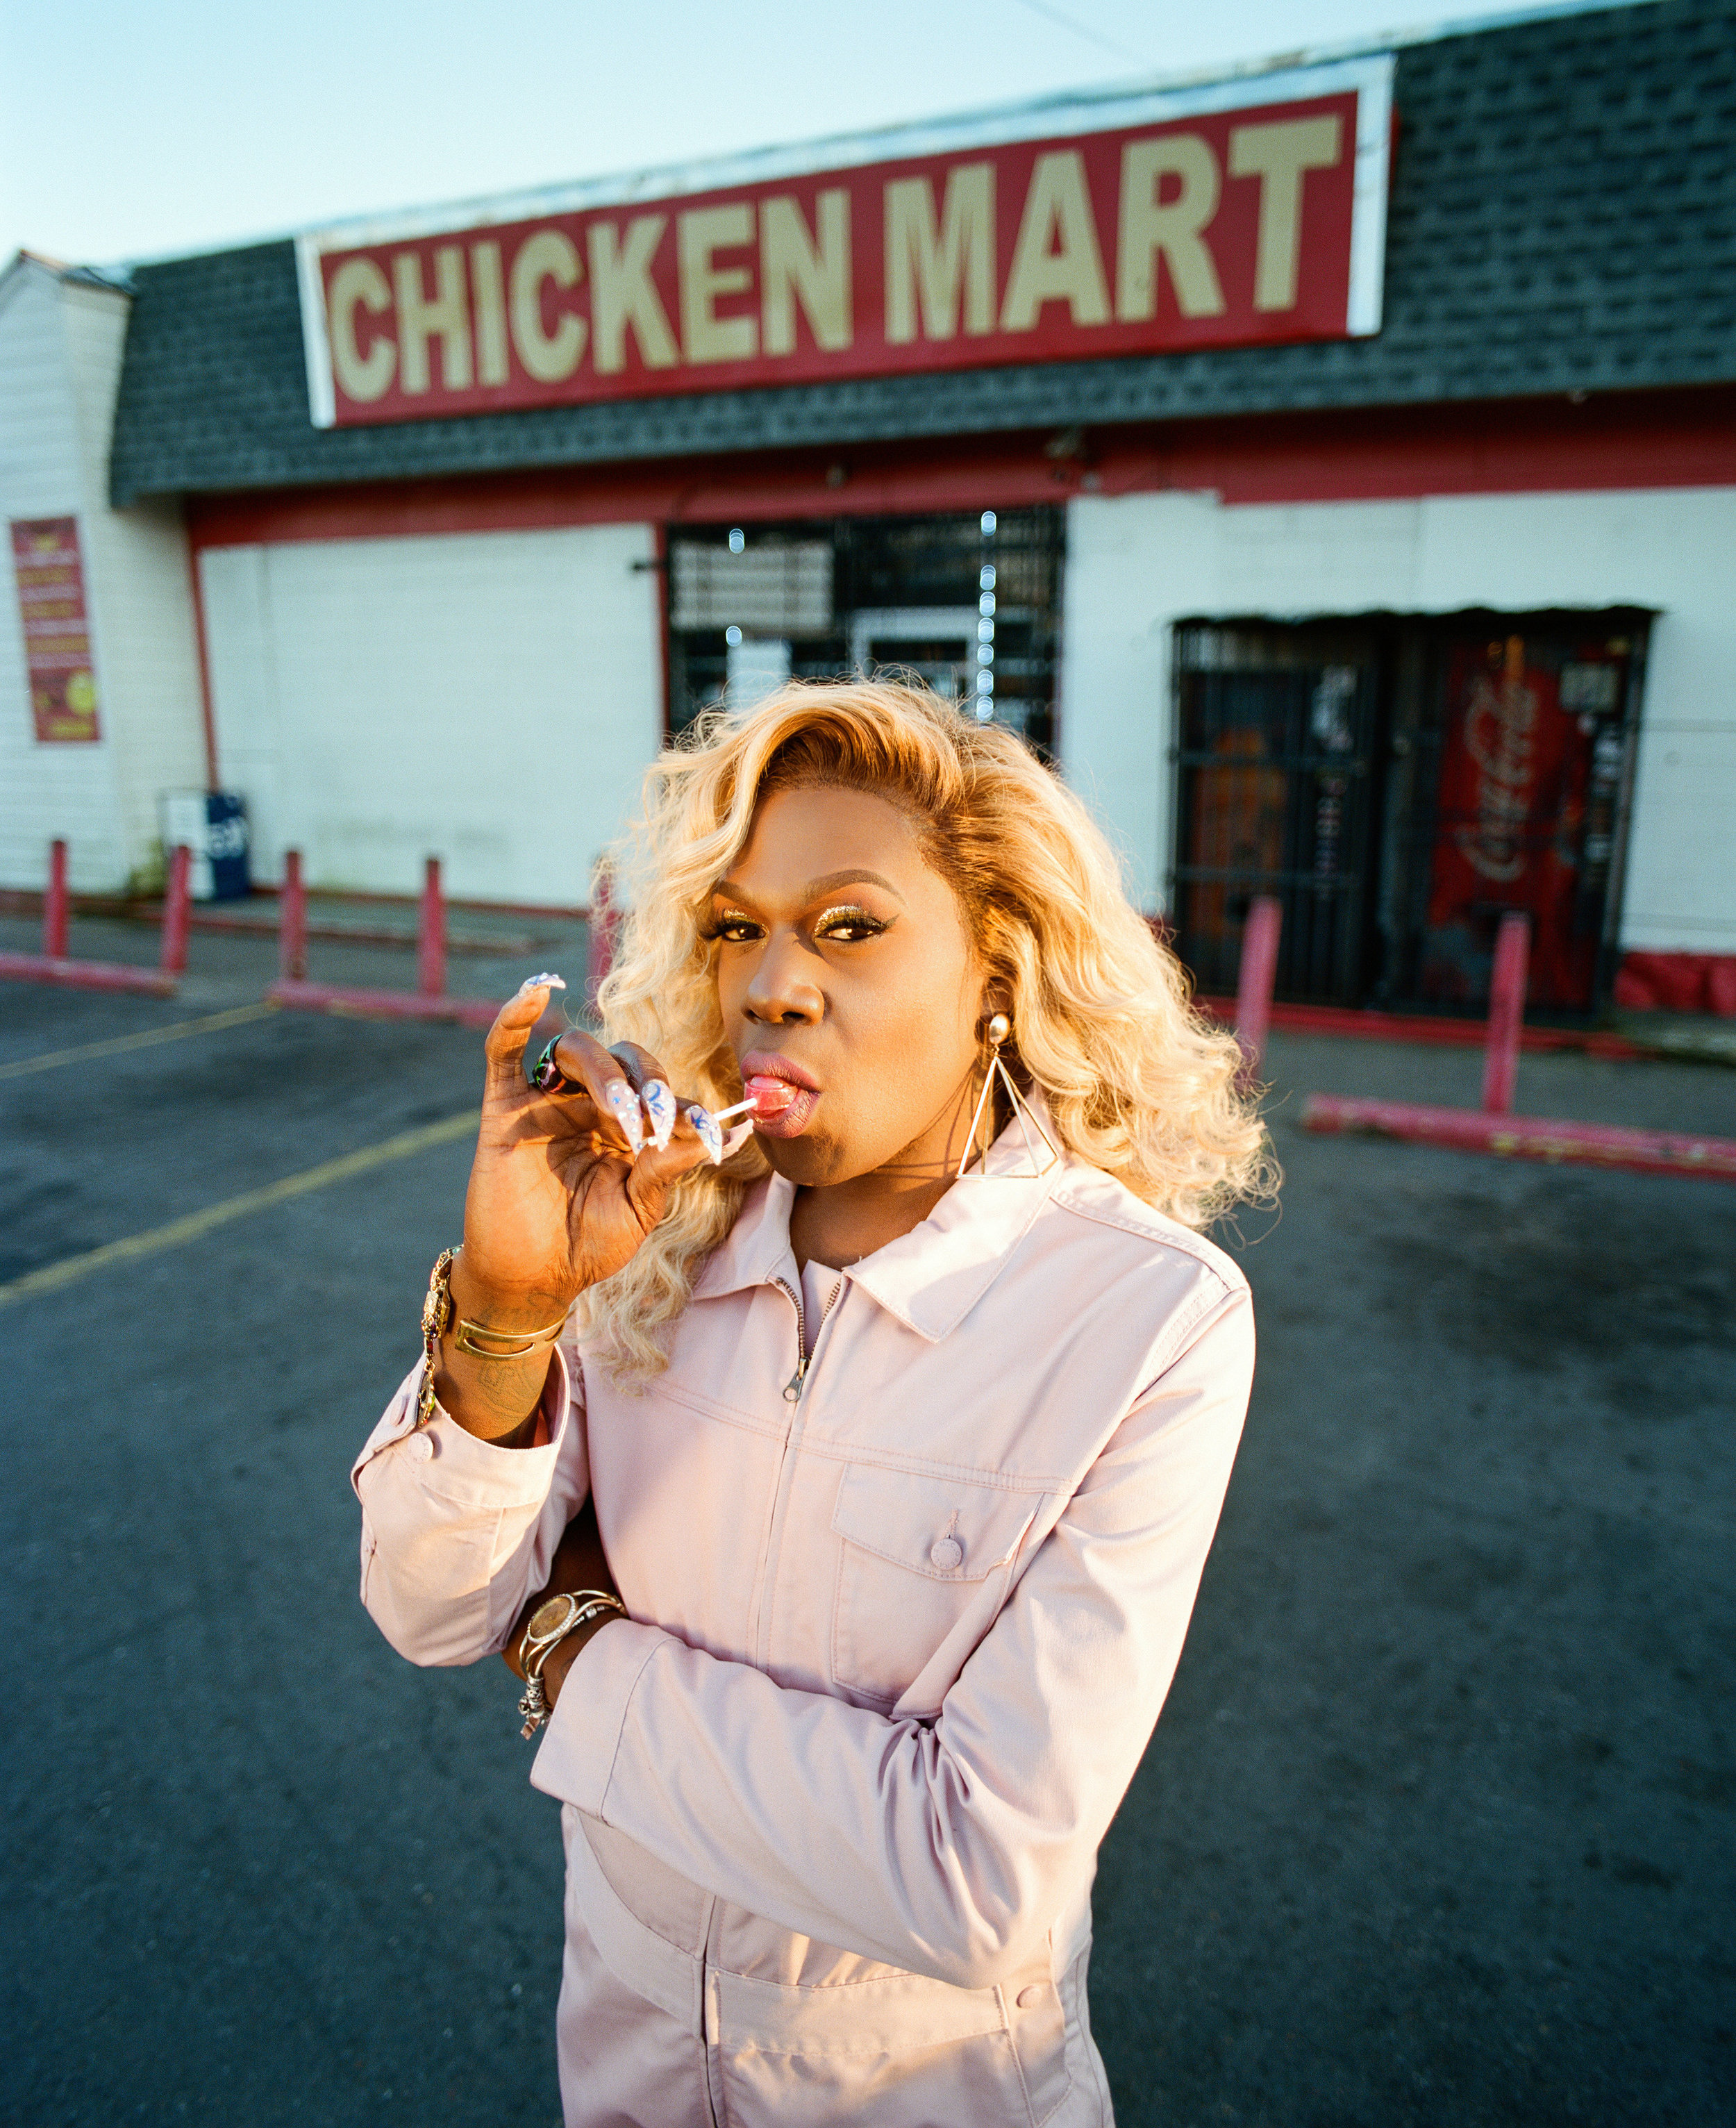 big-freedia-3rd-ward-bounce-44dfa362-01aa-448e-a13c-44cd1a503c09.jpg